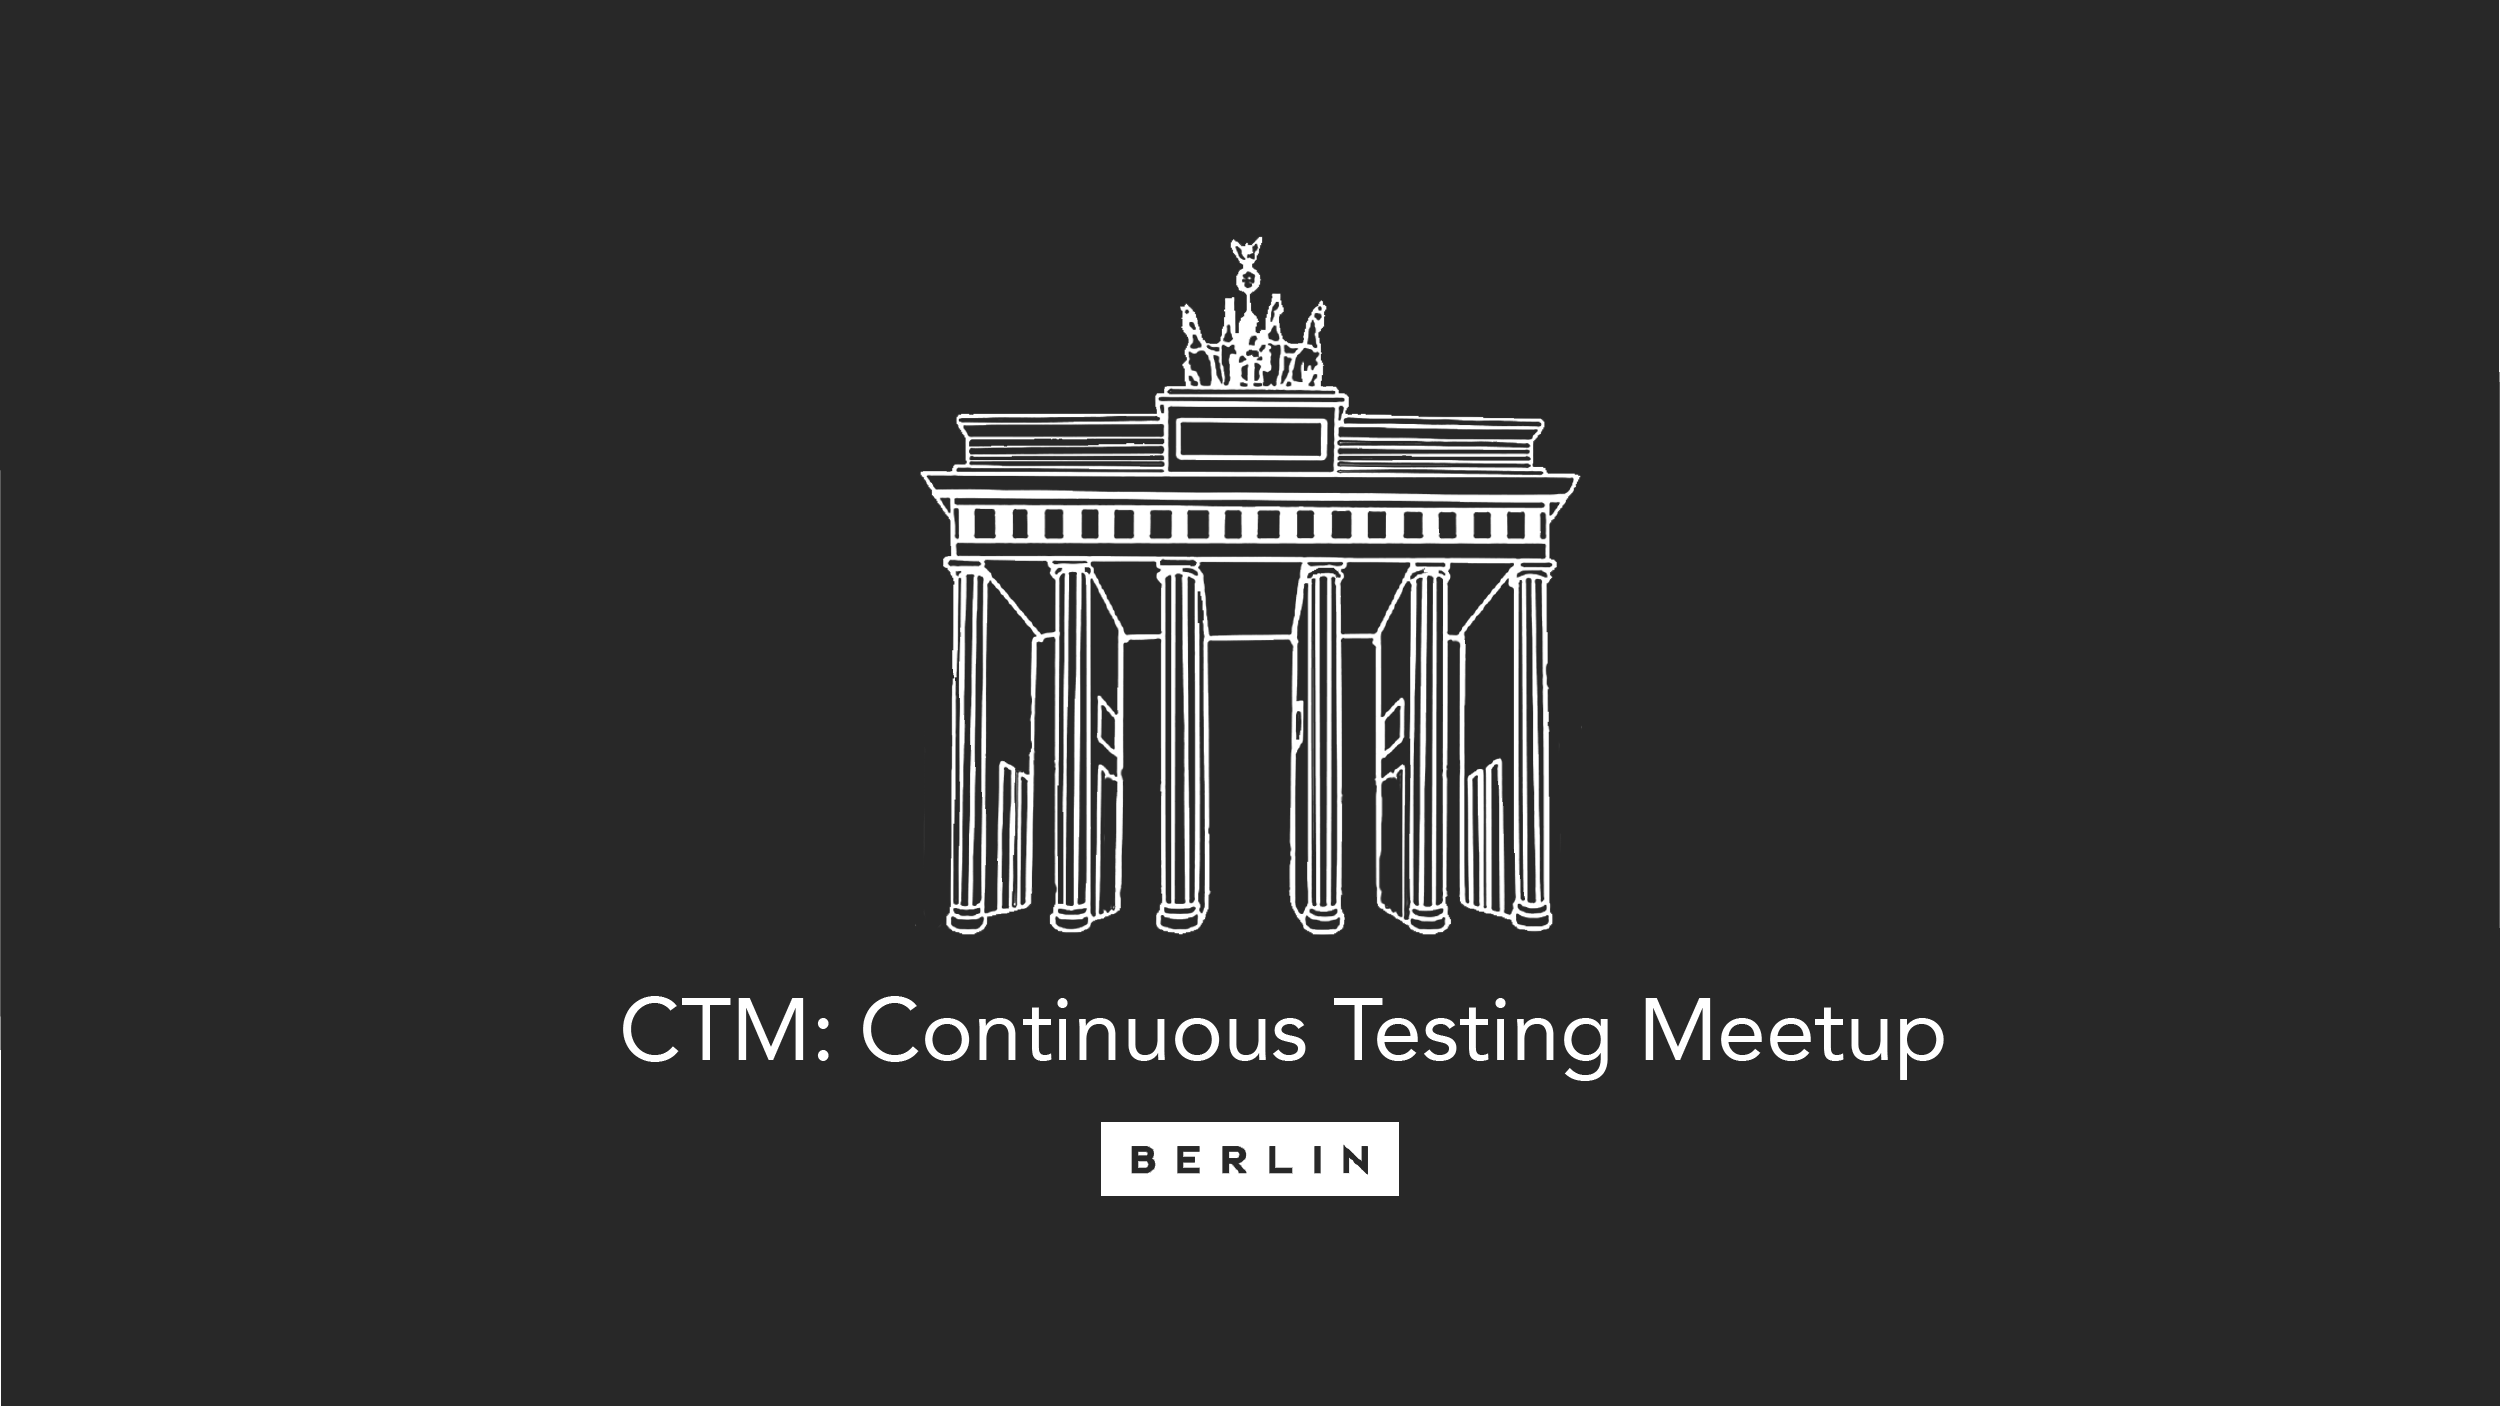 CTM: Continuous Testing Meetup